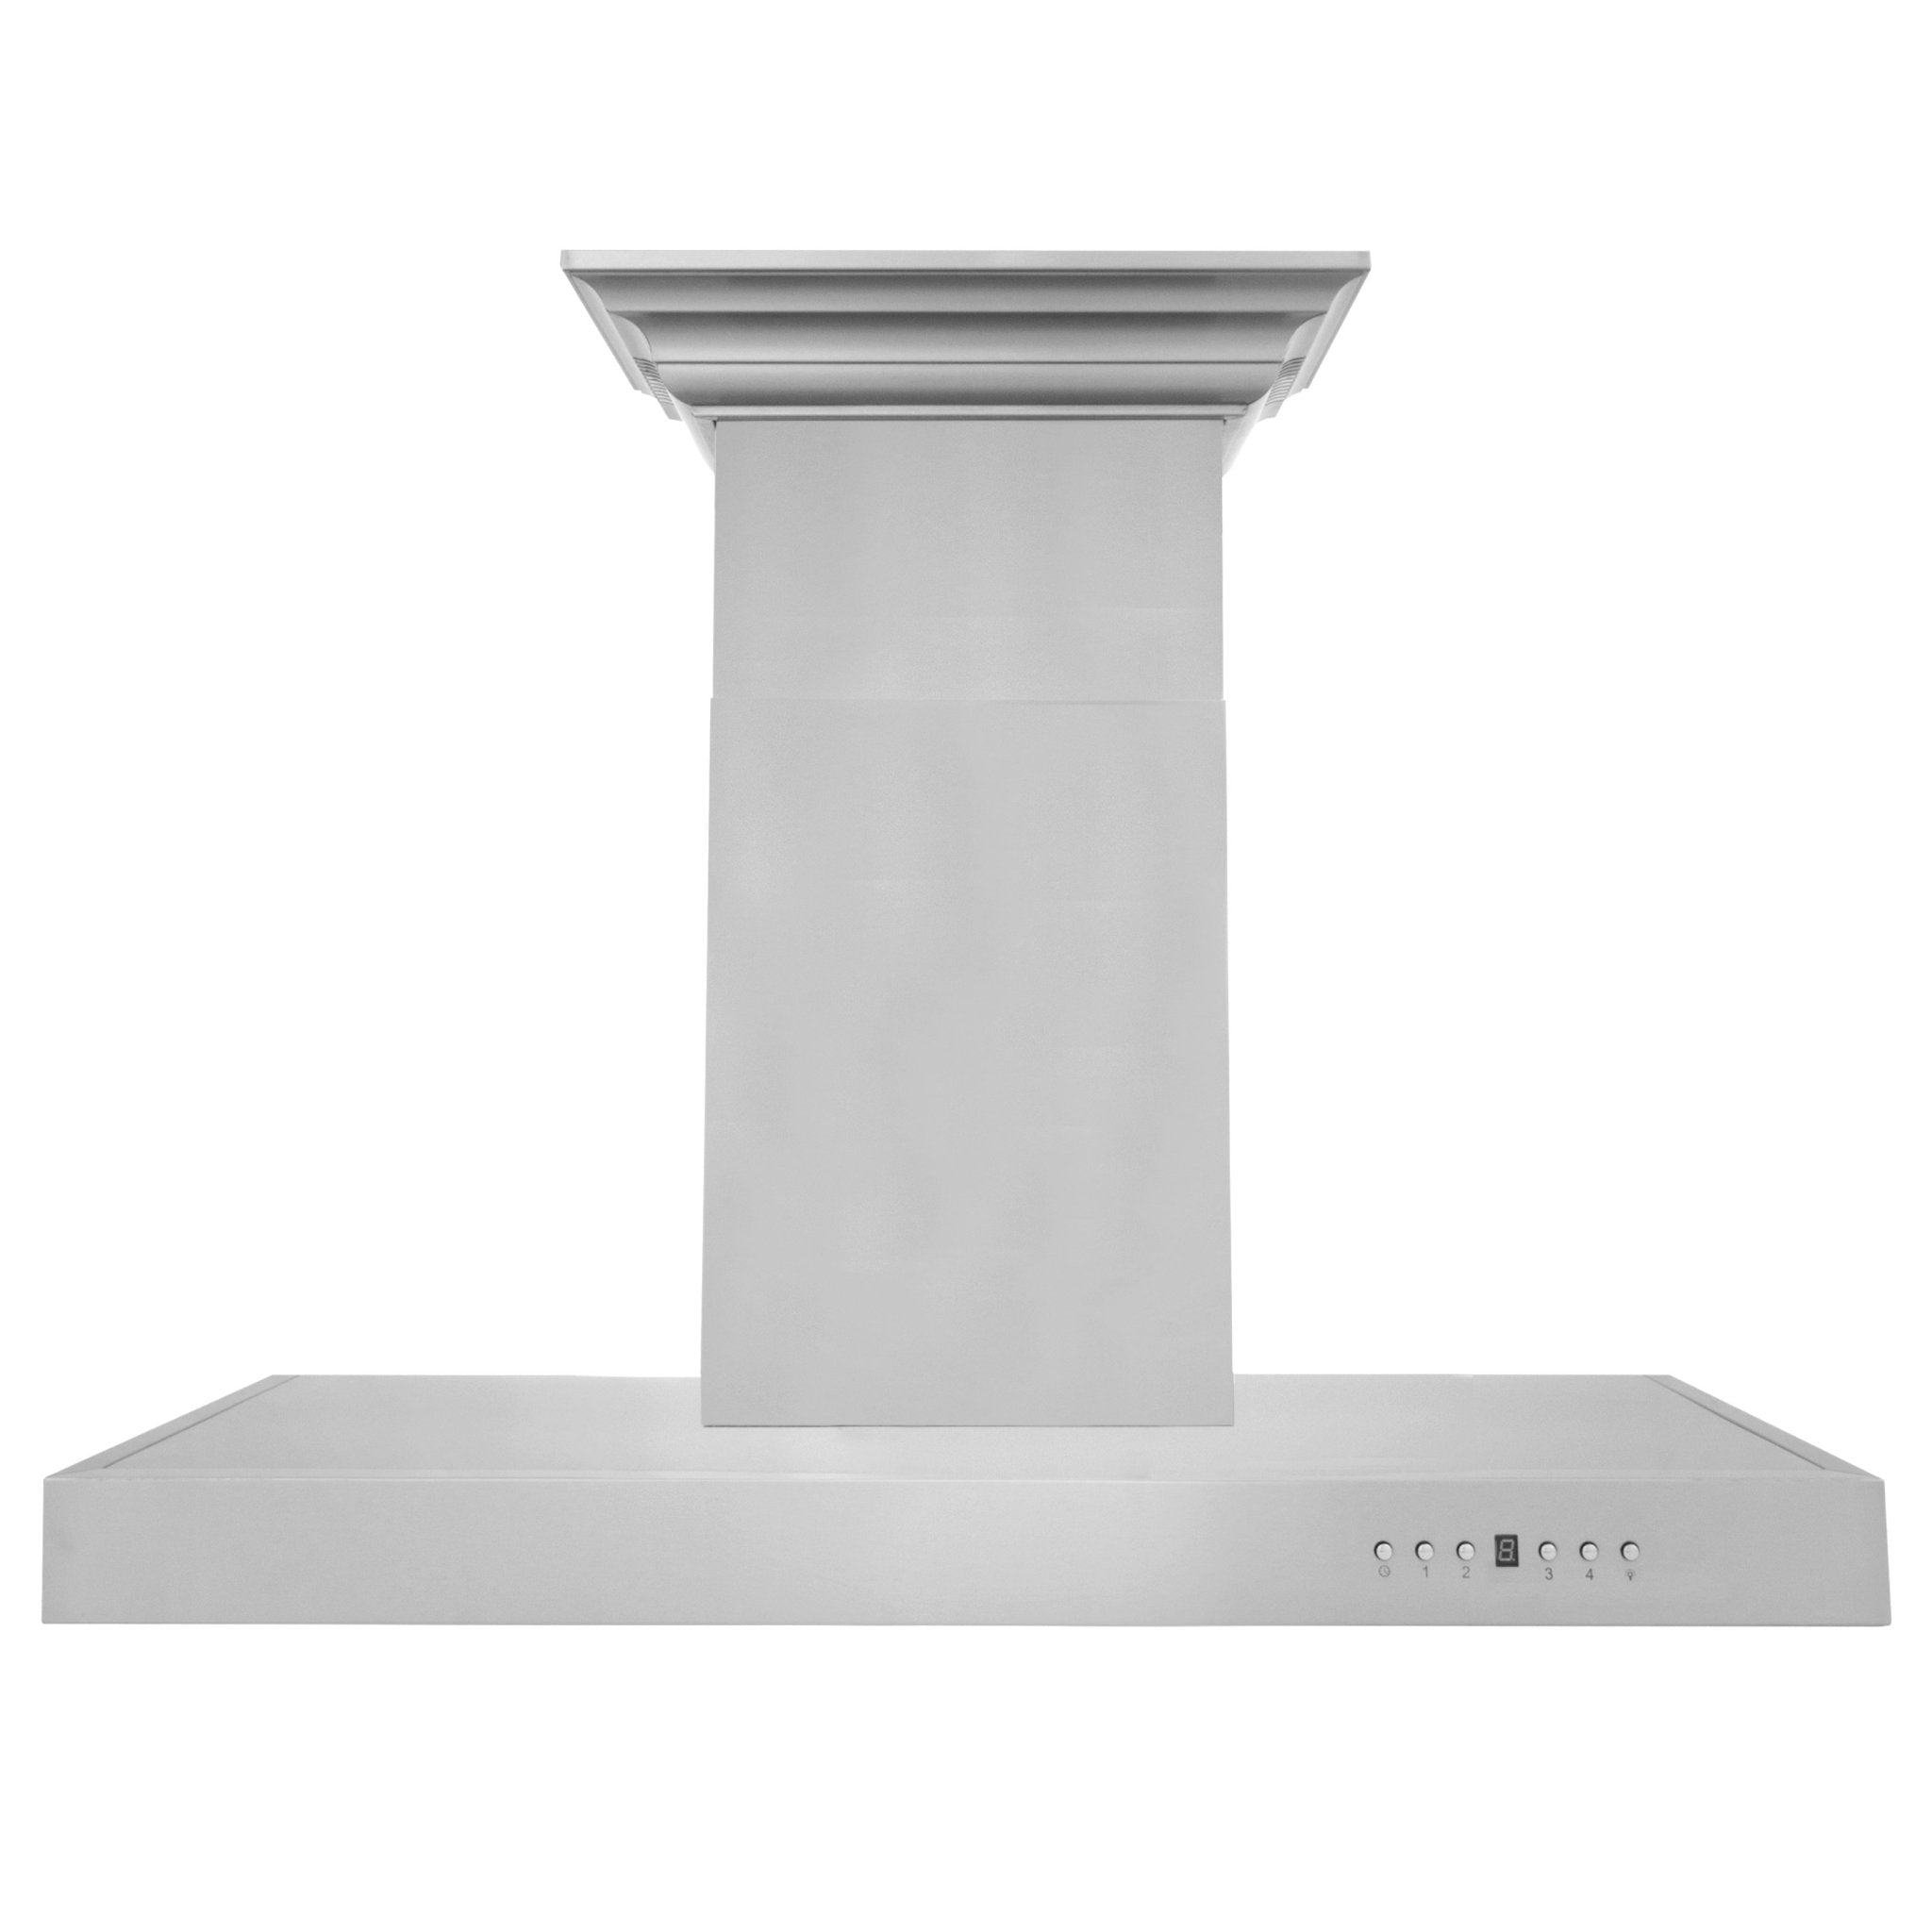 ZLINE Kitchen and Bath, ZLINE Wall Mount Range Hood In Stainless Steel With Built-In CrownSound® Bluetooth Speakers (KECRN-BT), KECRN-BT-30,